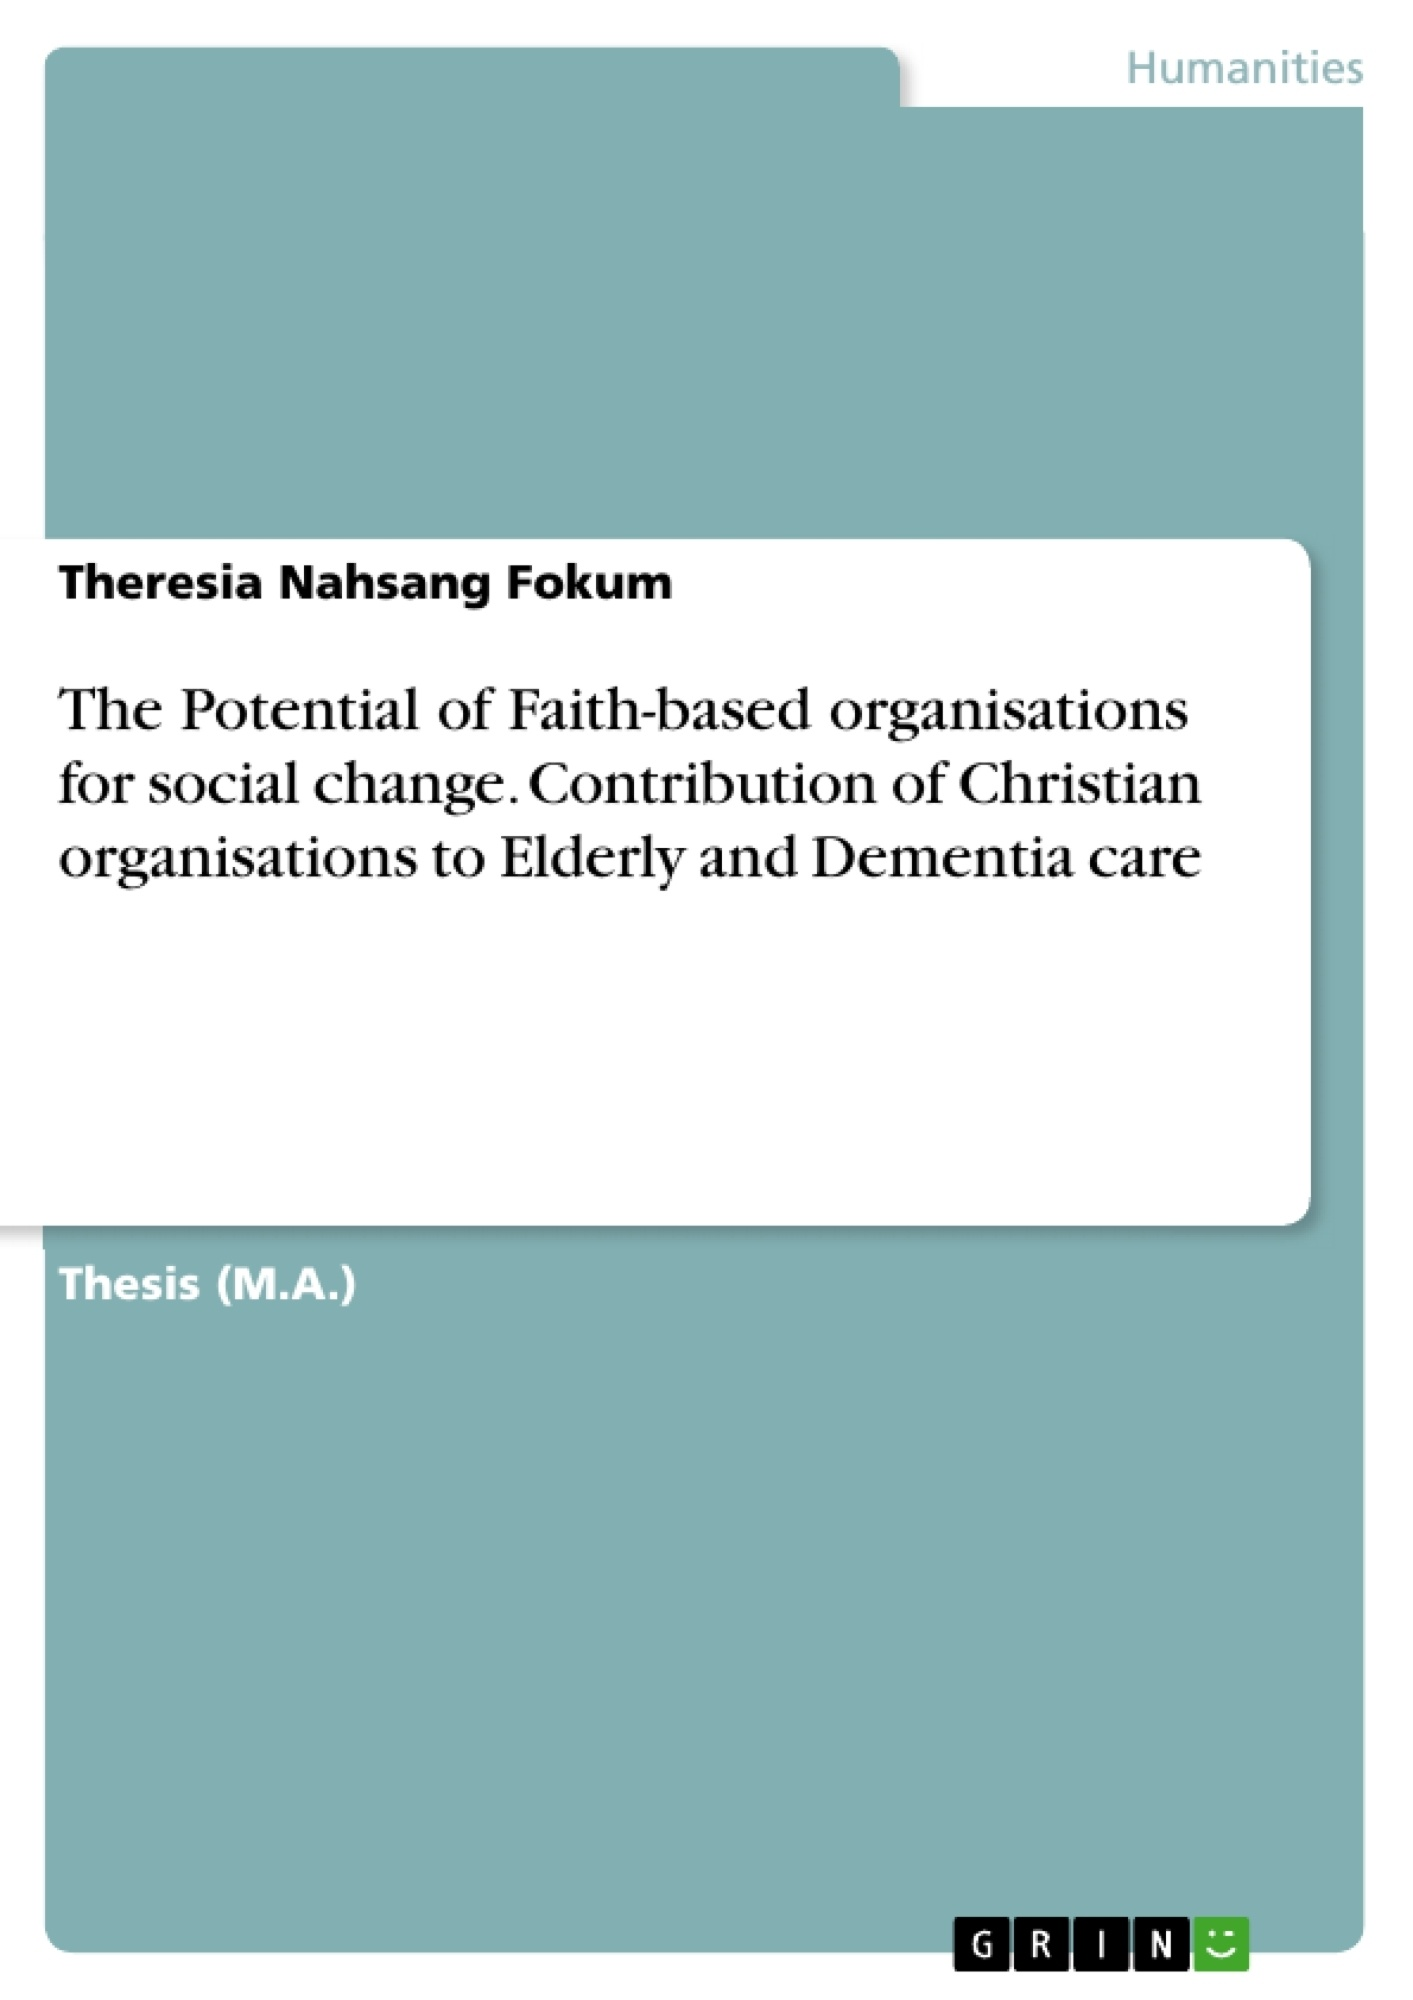 The Potential Of Faithbasedanisations For Social Change  Publish  Your Master's Thesis, Bachelor's Thesis, Essay Or Term Paper